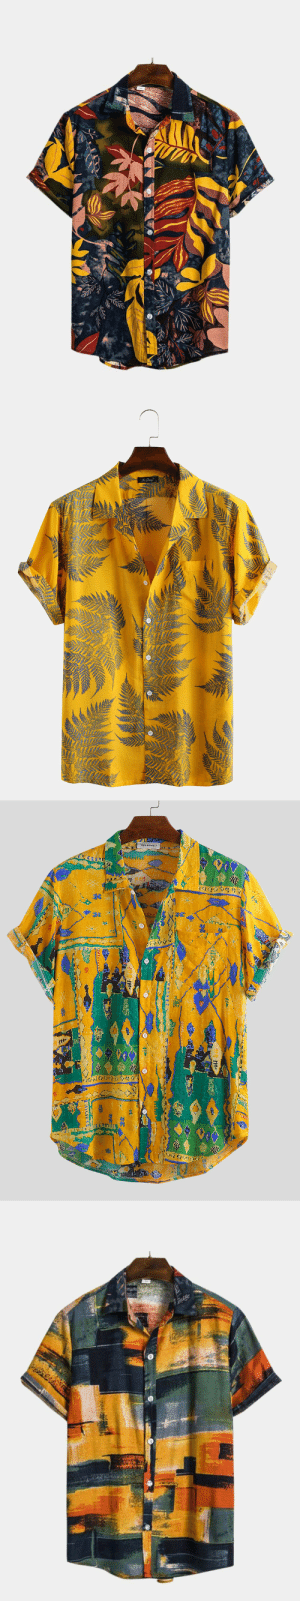 arrinastone: Men's Hawaiian Leaf Printed Chest Pocket Short Sleeve Shirts  Check out HERE : arrinastone: Men's Hawaiian Leaf Printed Chest Pocket Short Sleeve Shirts  Check out HERE